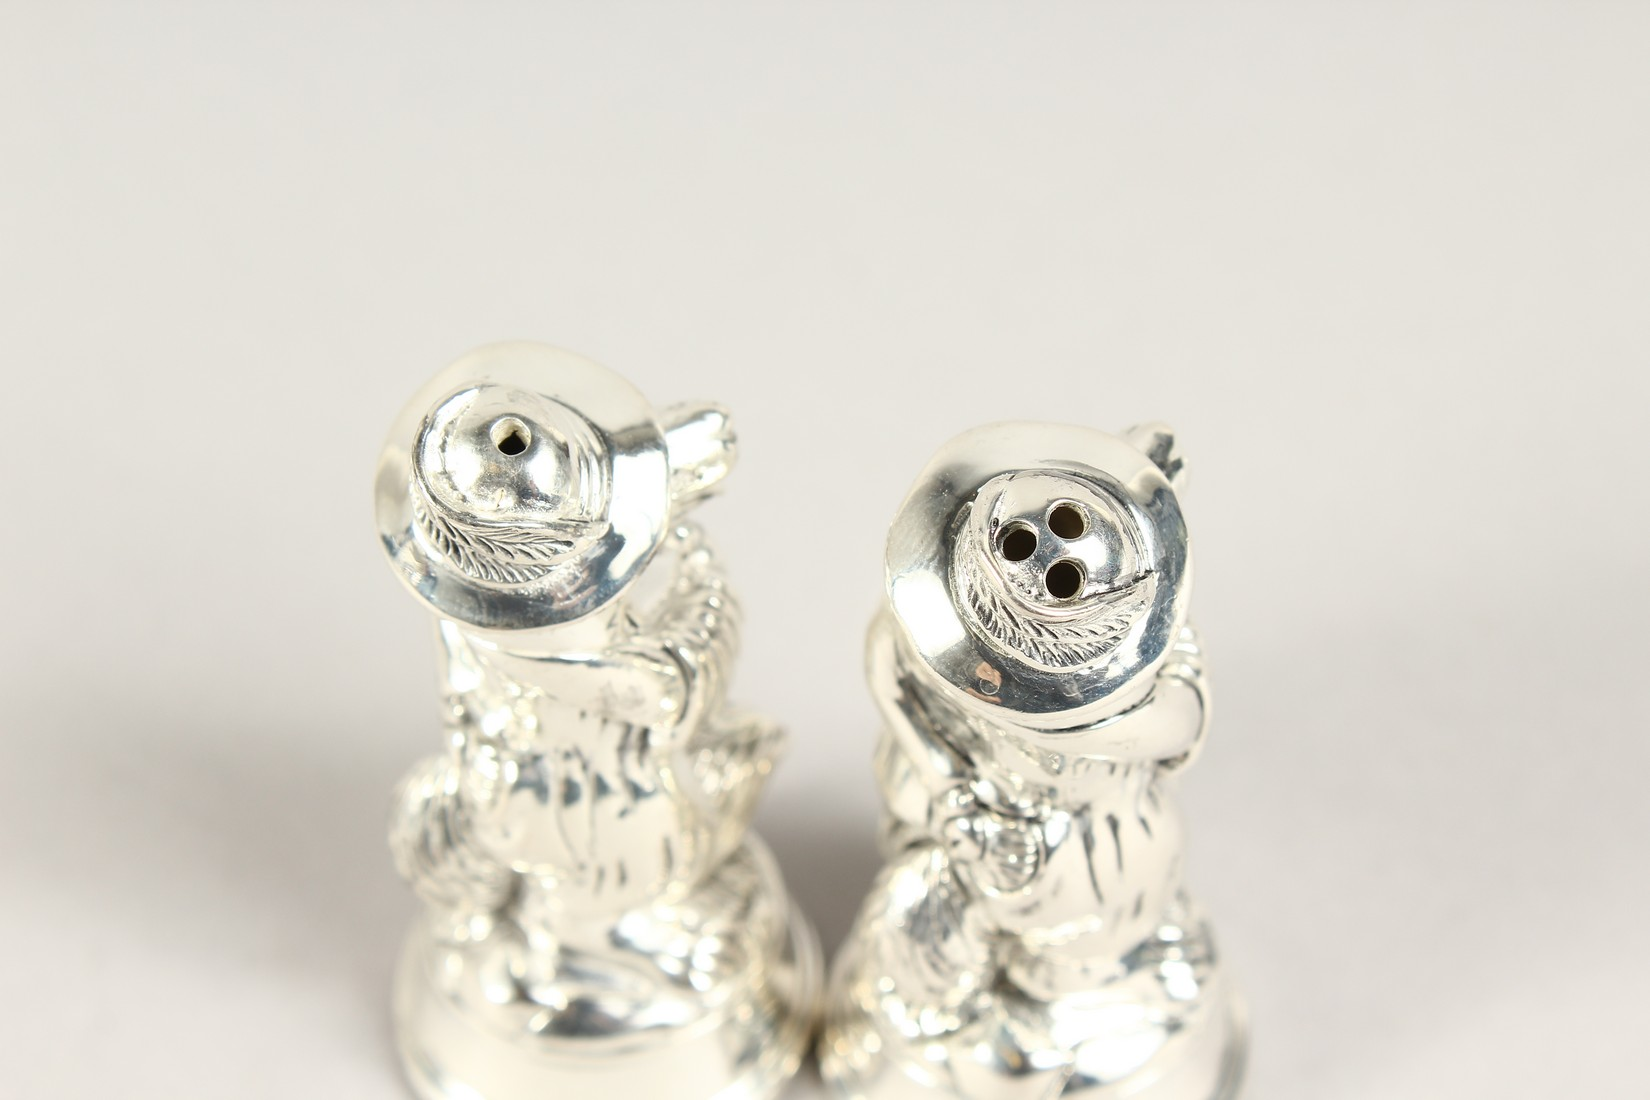 A PAIR OF SILVER PLATE FOX SALT AND PEPPERS - Image 3 of 4